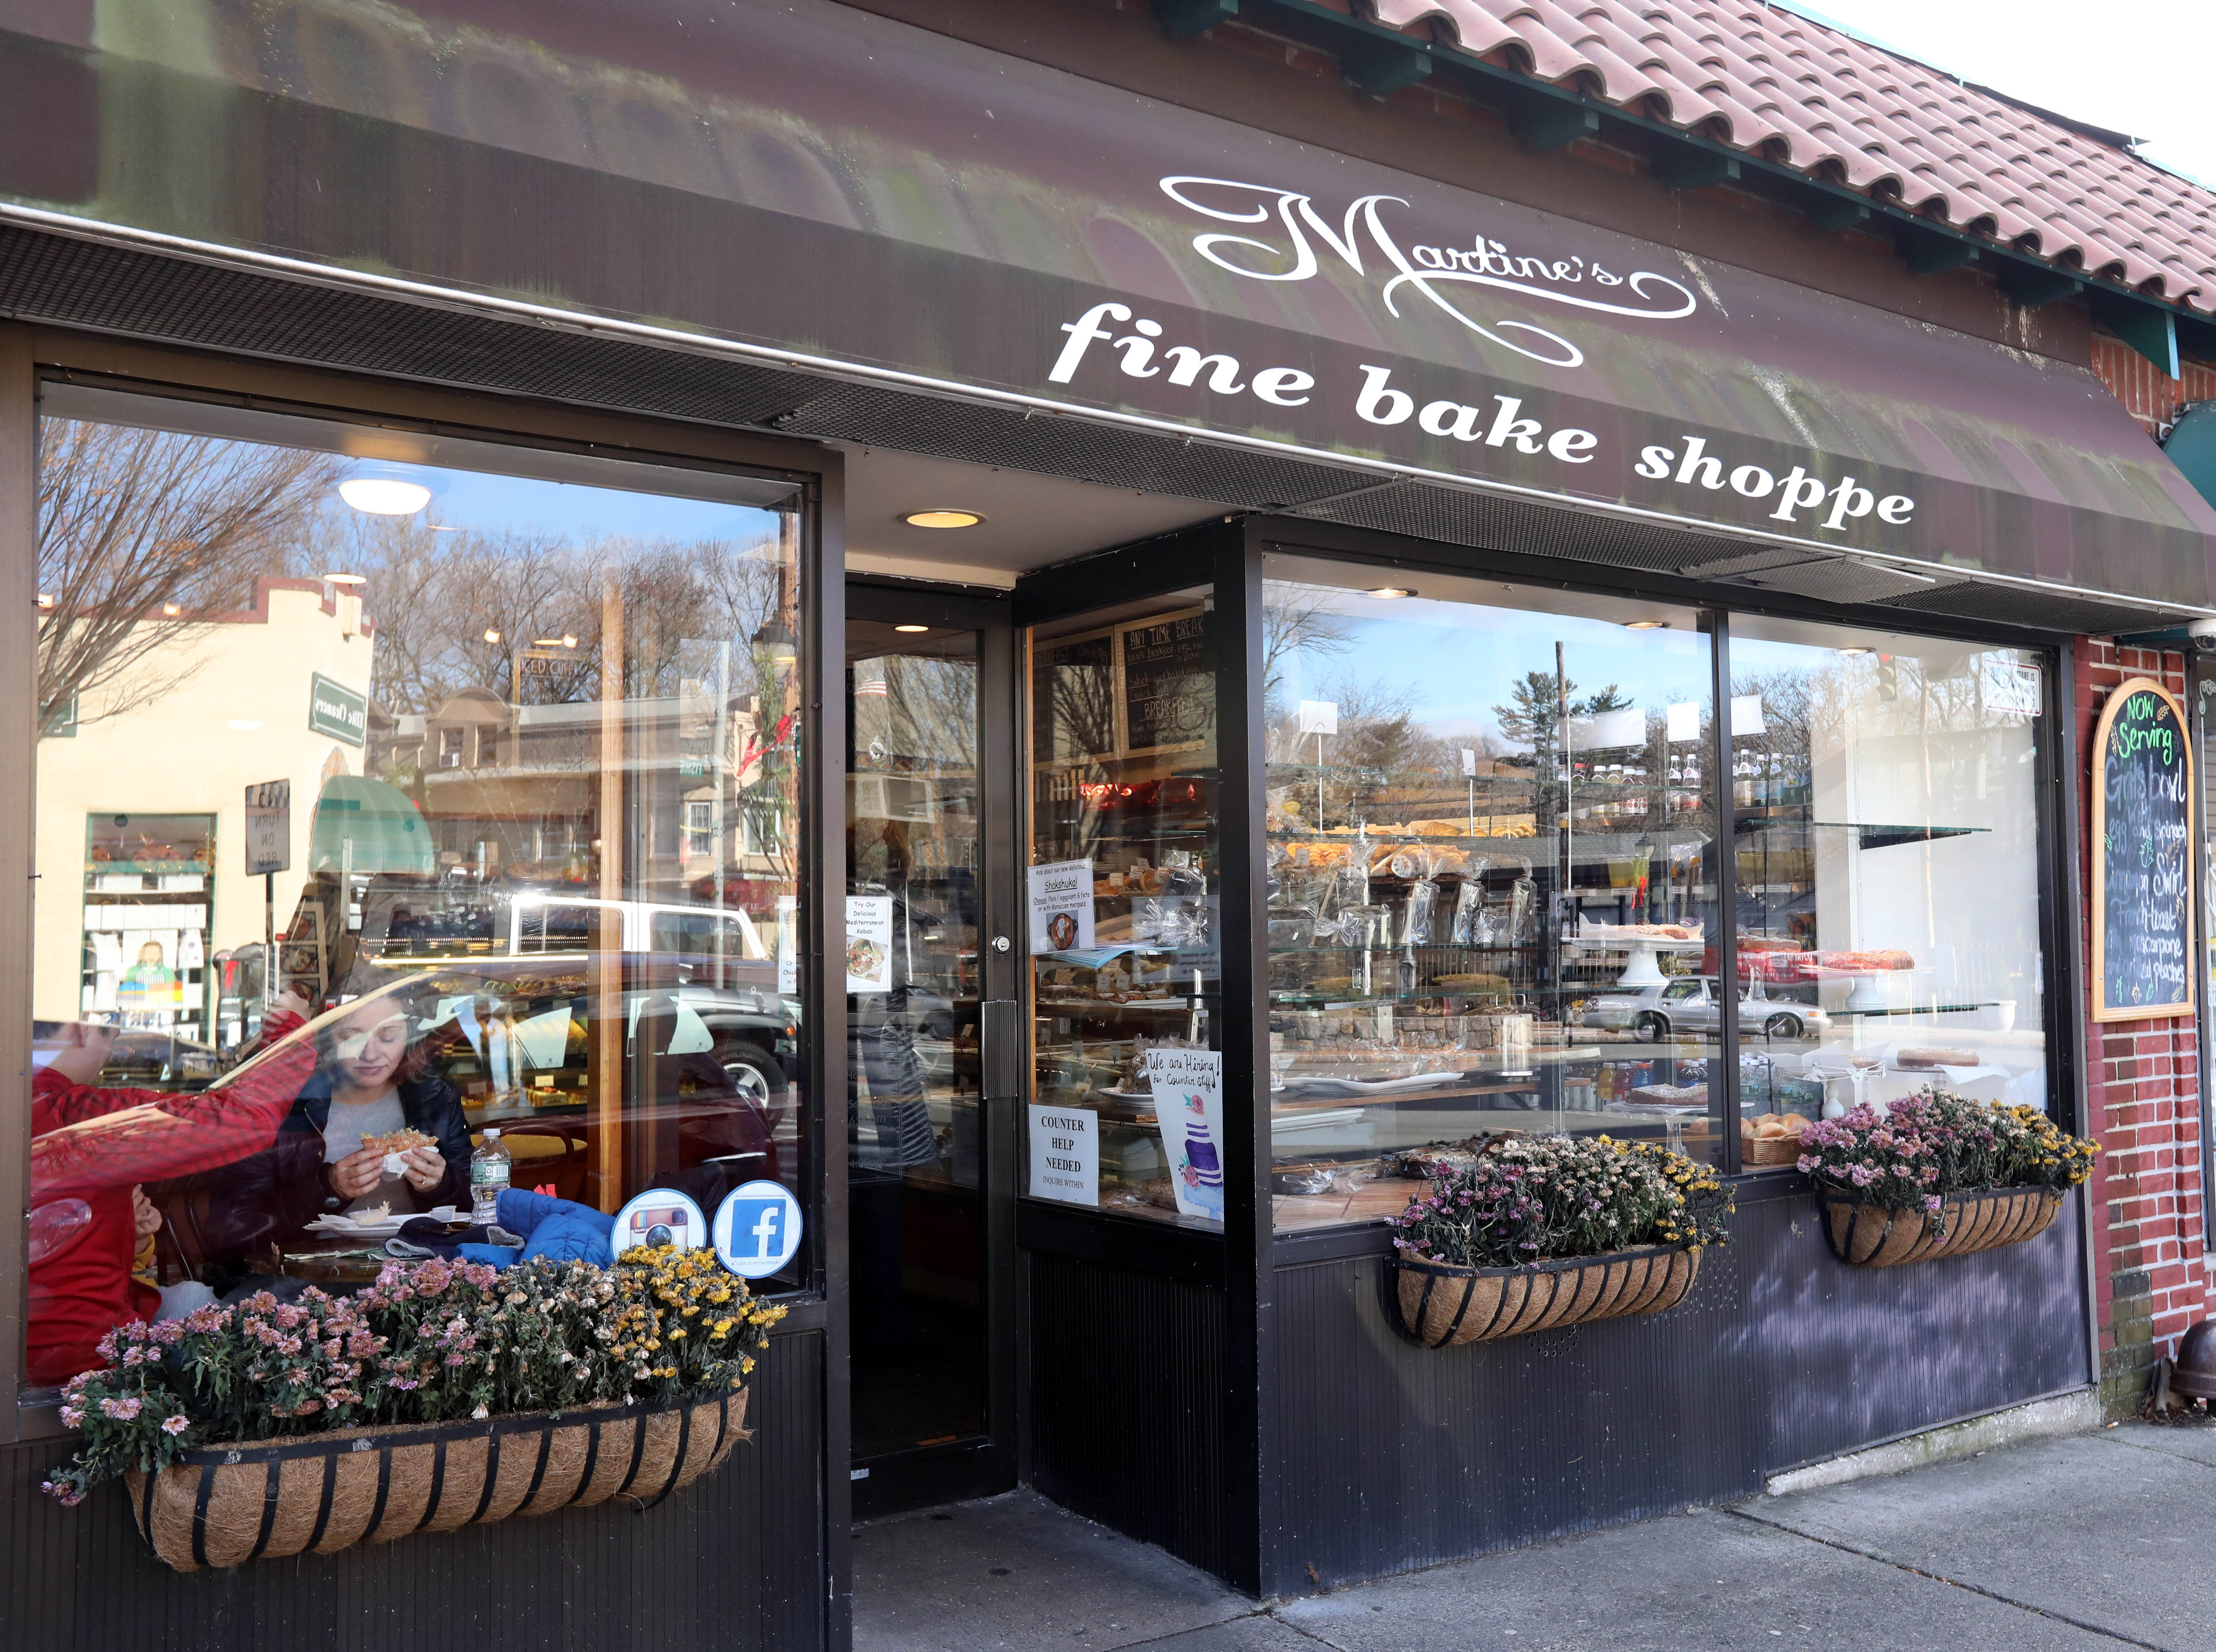 Martine's Fine Bake Shoppe in Tuckahoe Nov. 29, 2018. The family bakery, which has a second location in Scarsdale, is celebrating their 10th anniversary in business.